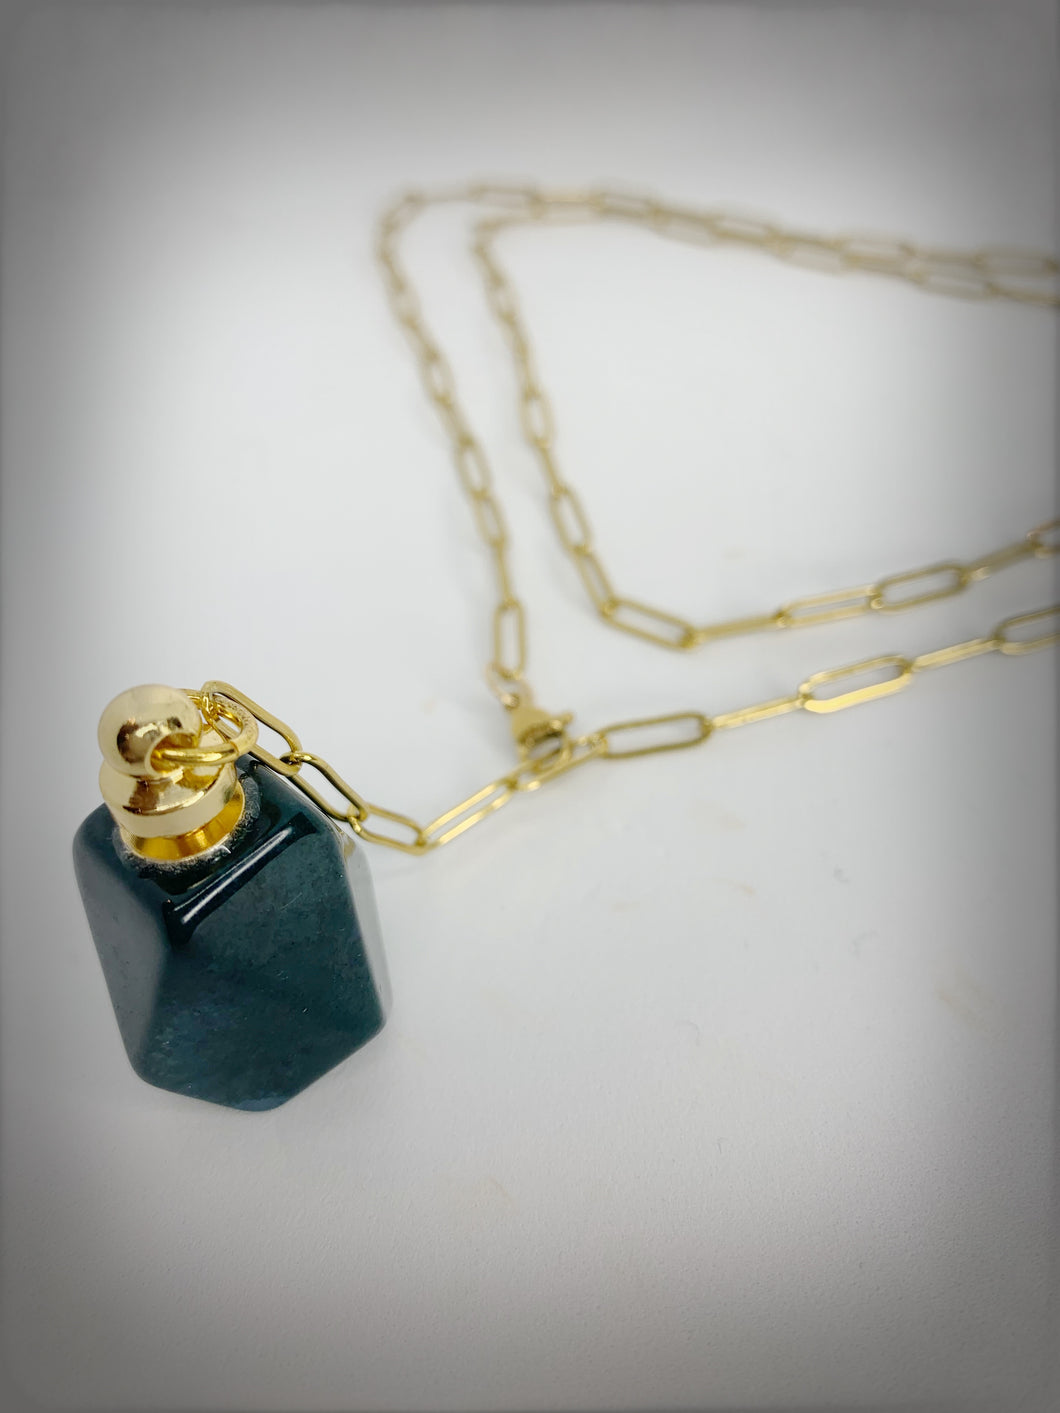 RAW COLLECTION - Jade Stone Essential Oil Bottle on Gold Link Chain (Adjustable)